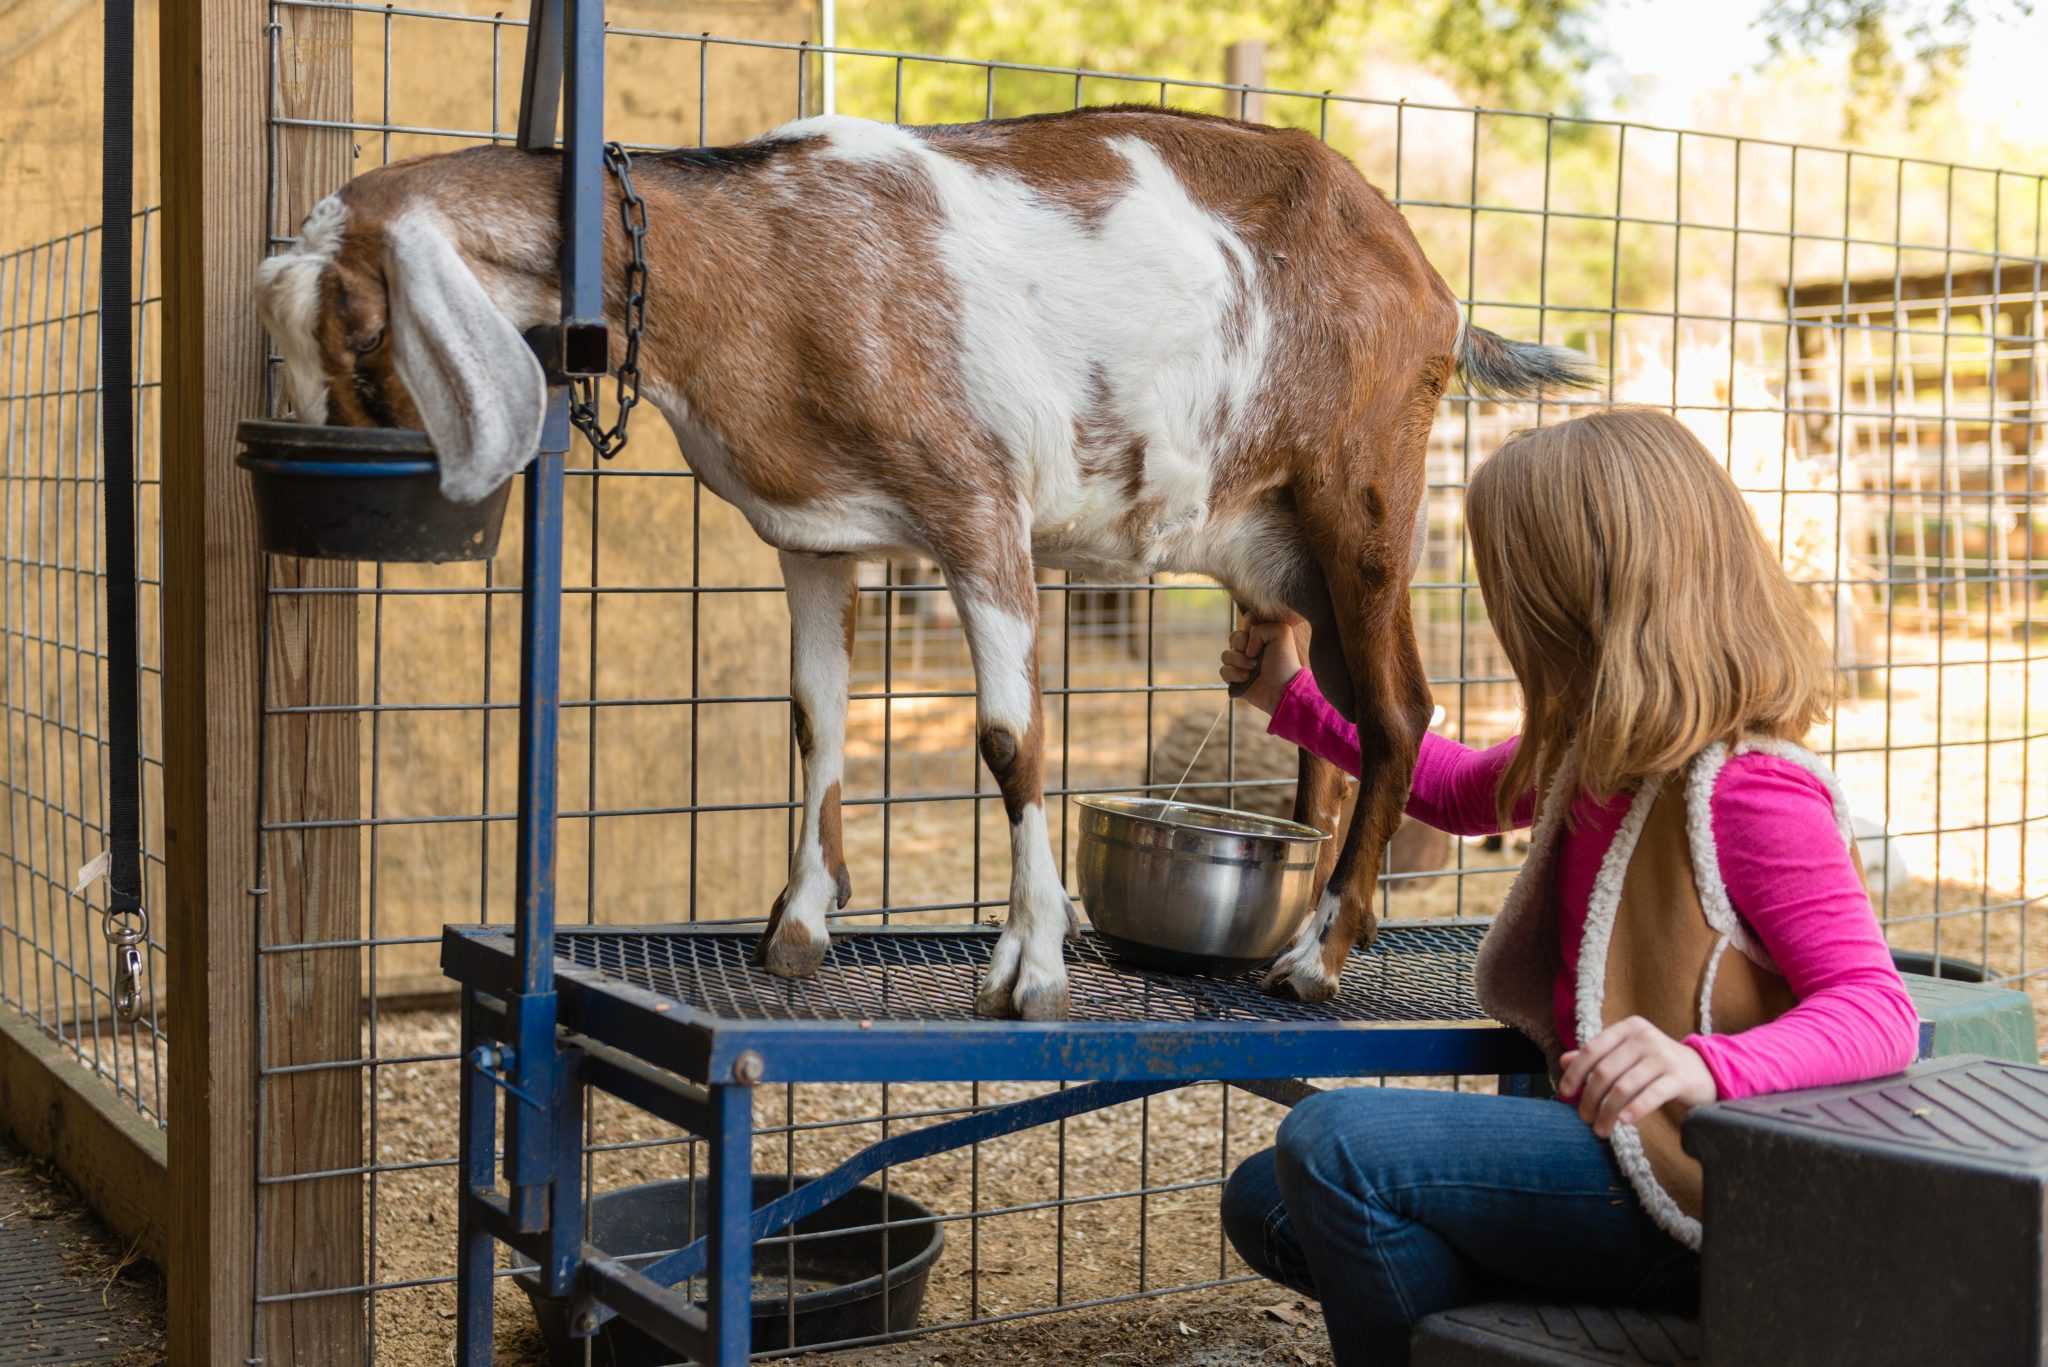 A young girl milking a goat on a working farm.